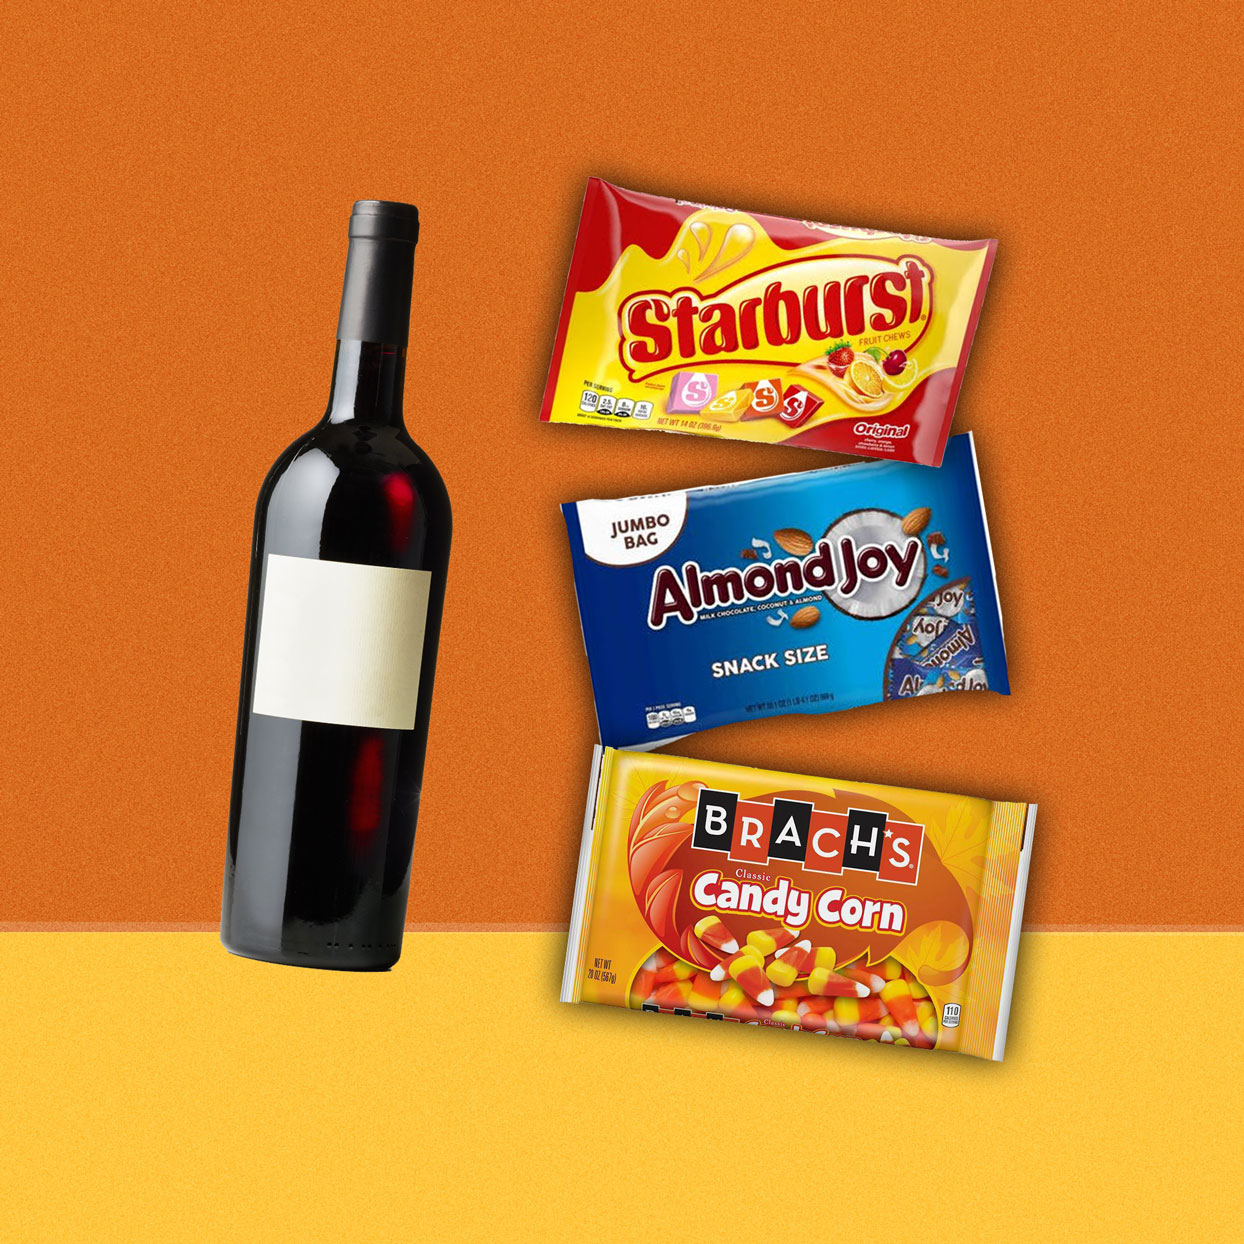 The Best Wine to Drink With Your Favorite Halloween Candy